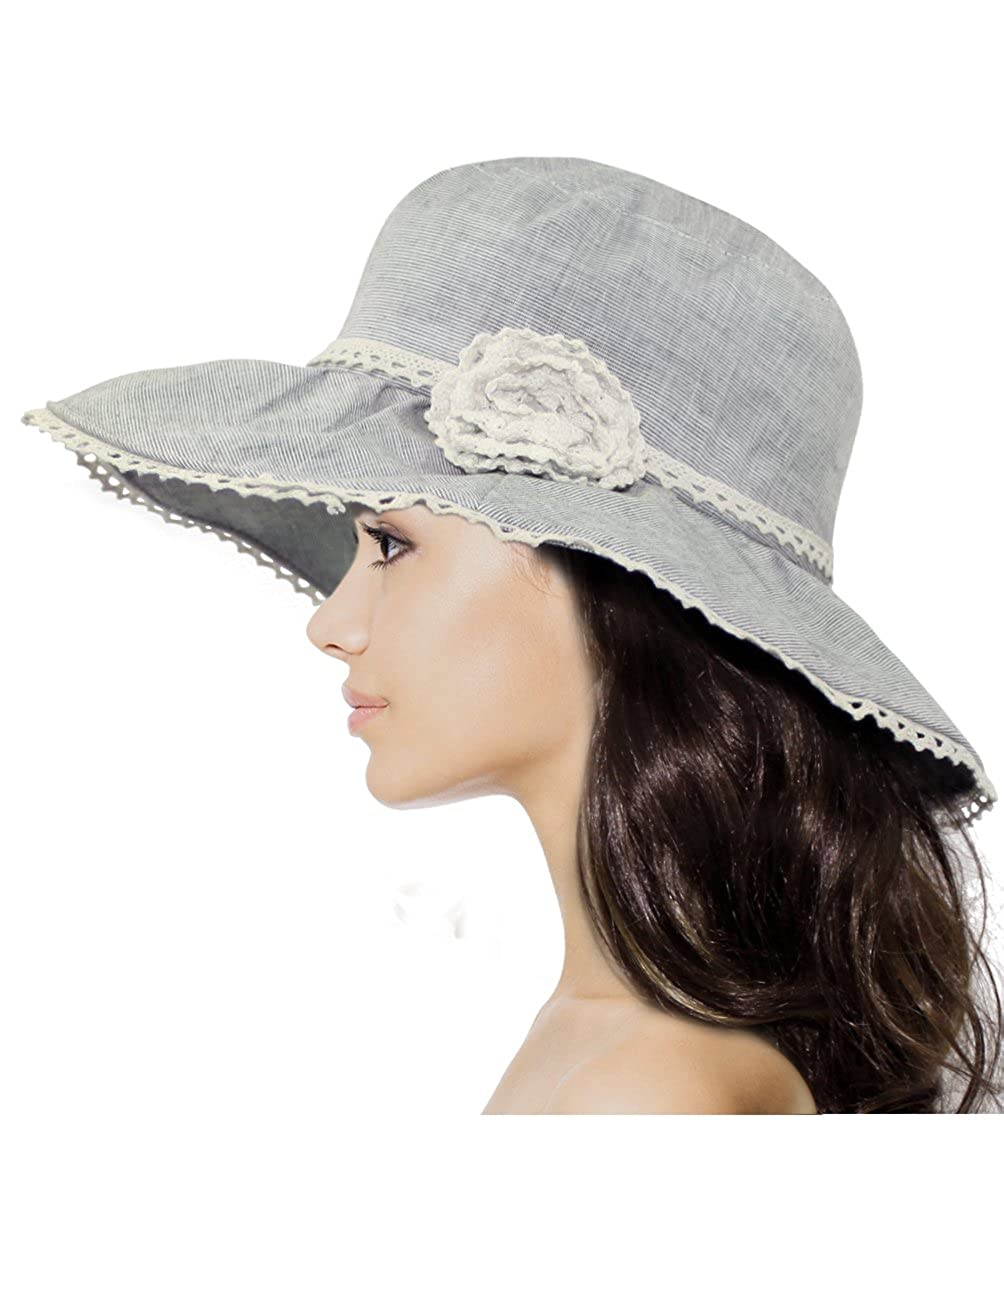 f034d28a92c09 Dahlia Women s Summer Sun Hat - Lace Flower Shapeable Edge Bucket Hat Blue  Gray at Amazon Women s Clothing store